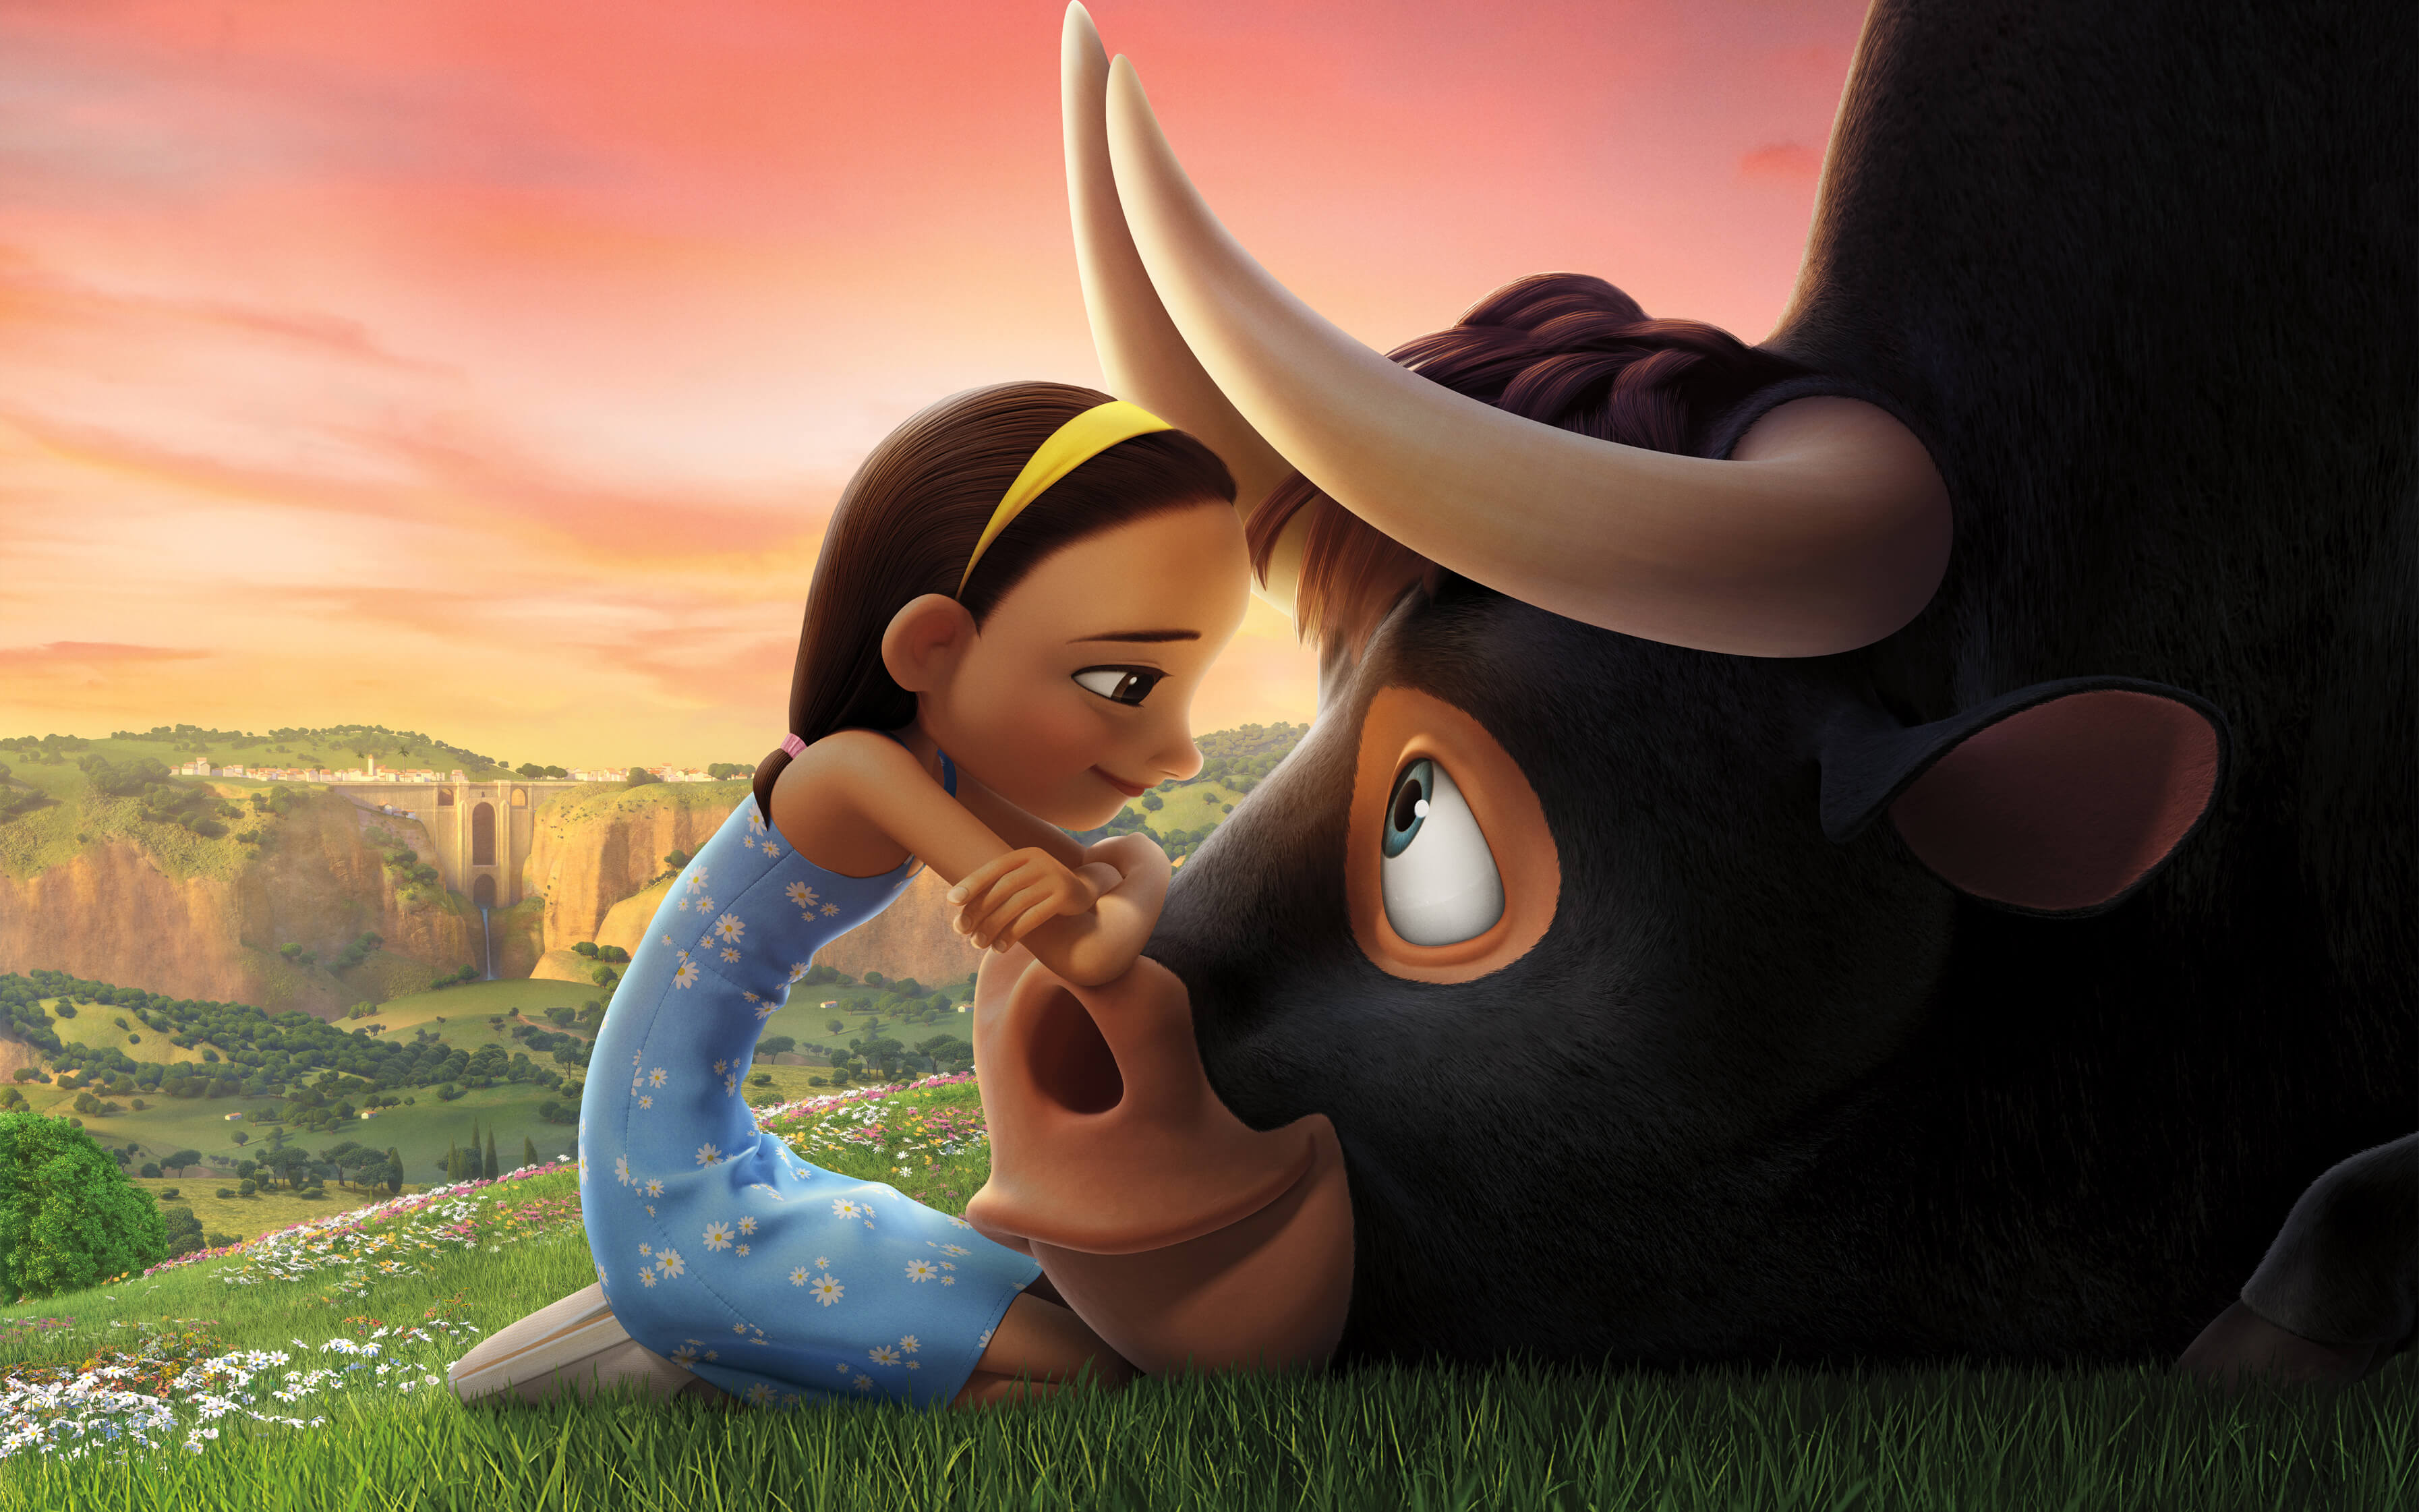 ferdinand movie widescreen hd wallpaper 63469